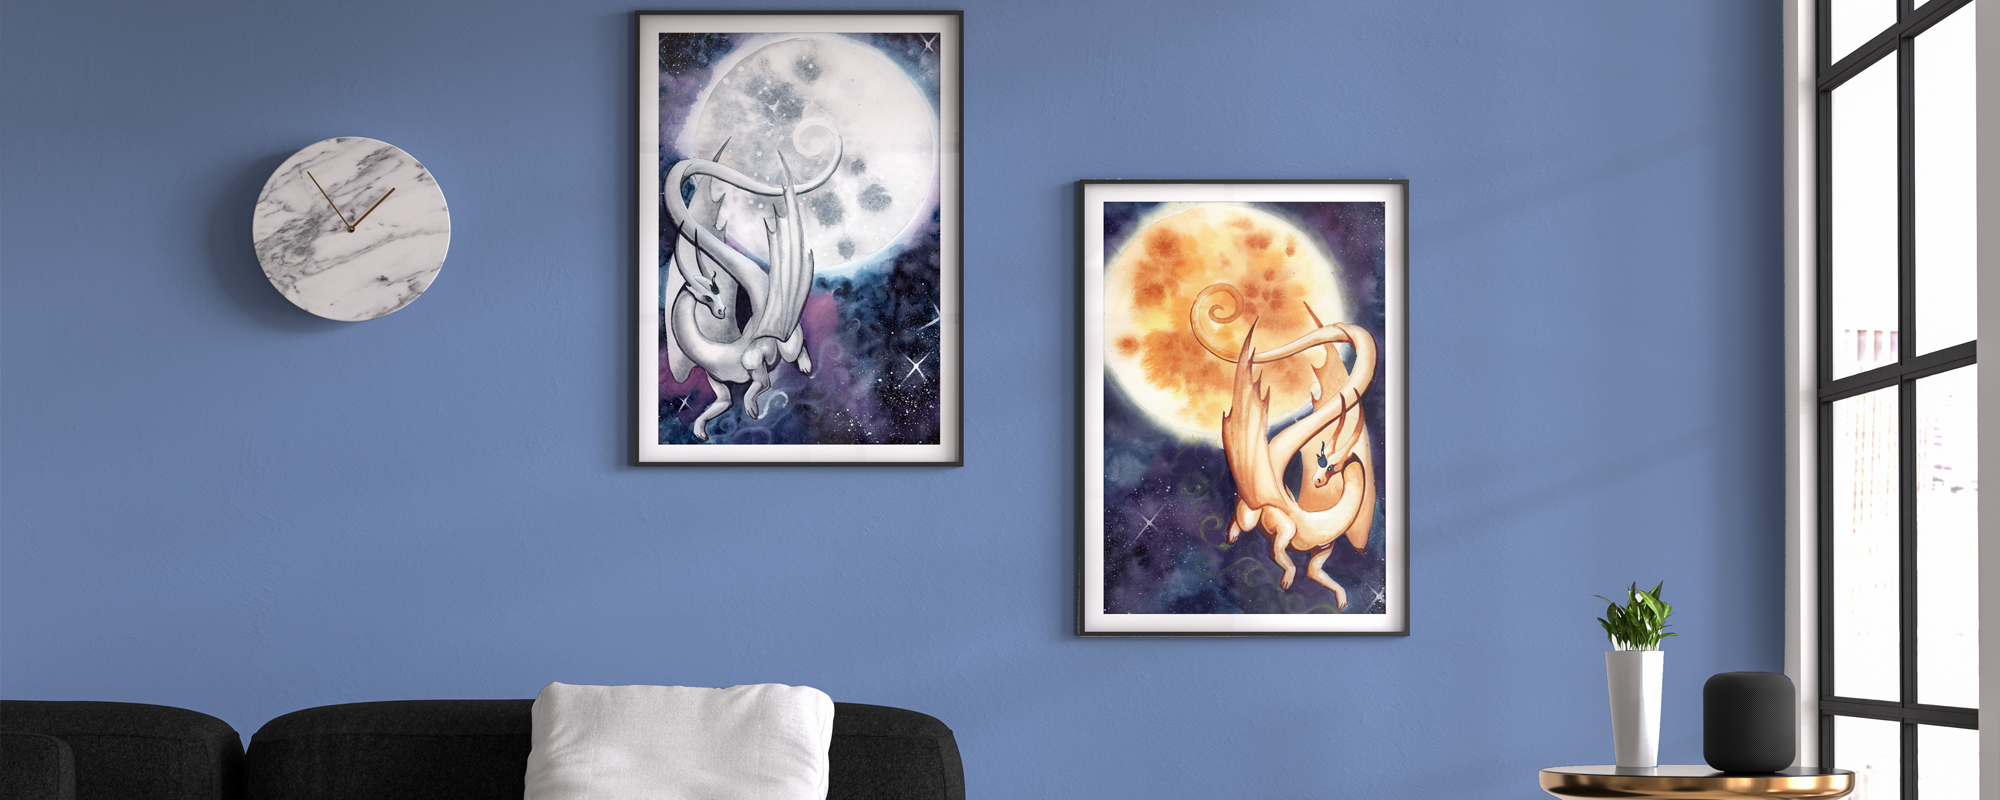 Blue room with art hanging. 2 dragons, one with the moon, the other with the sun.